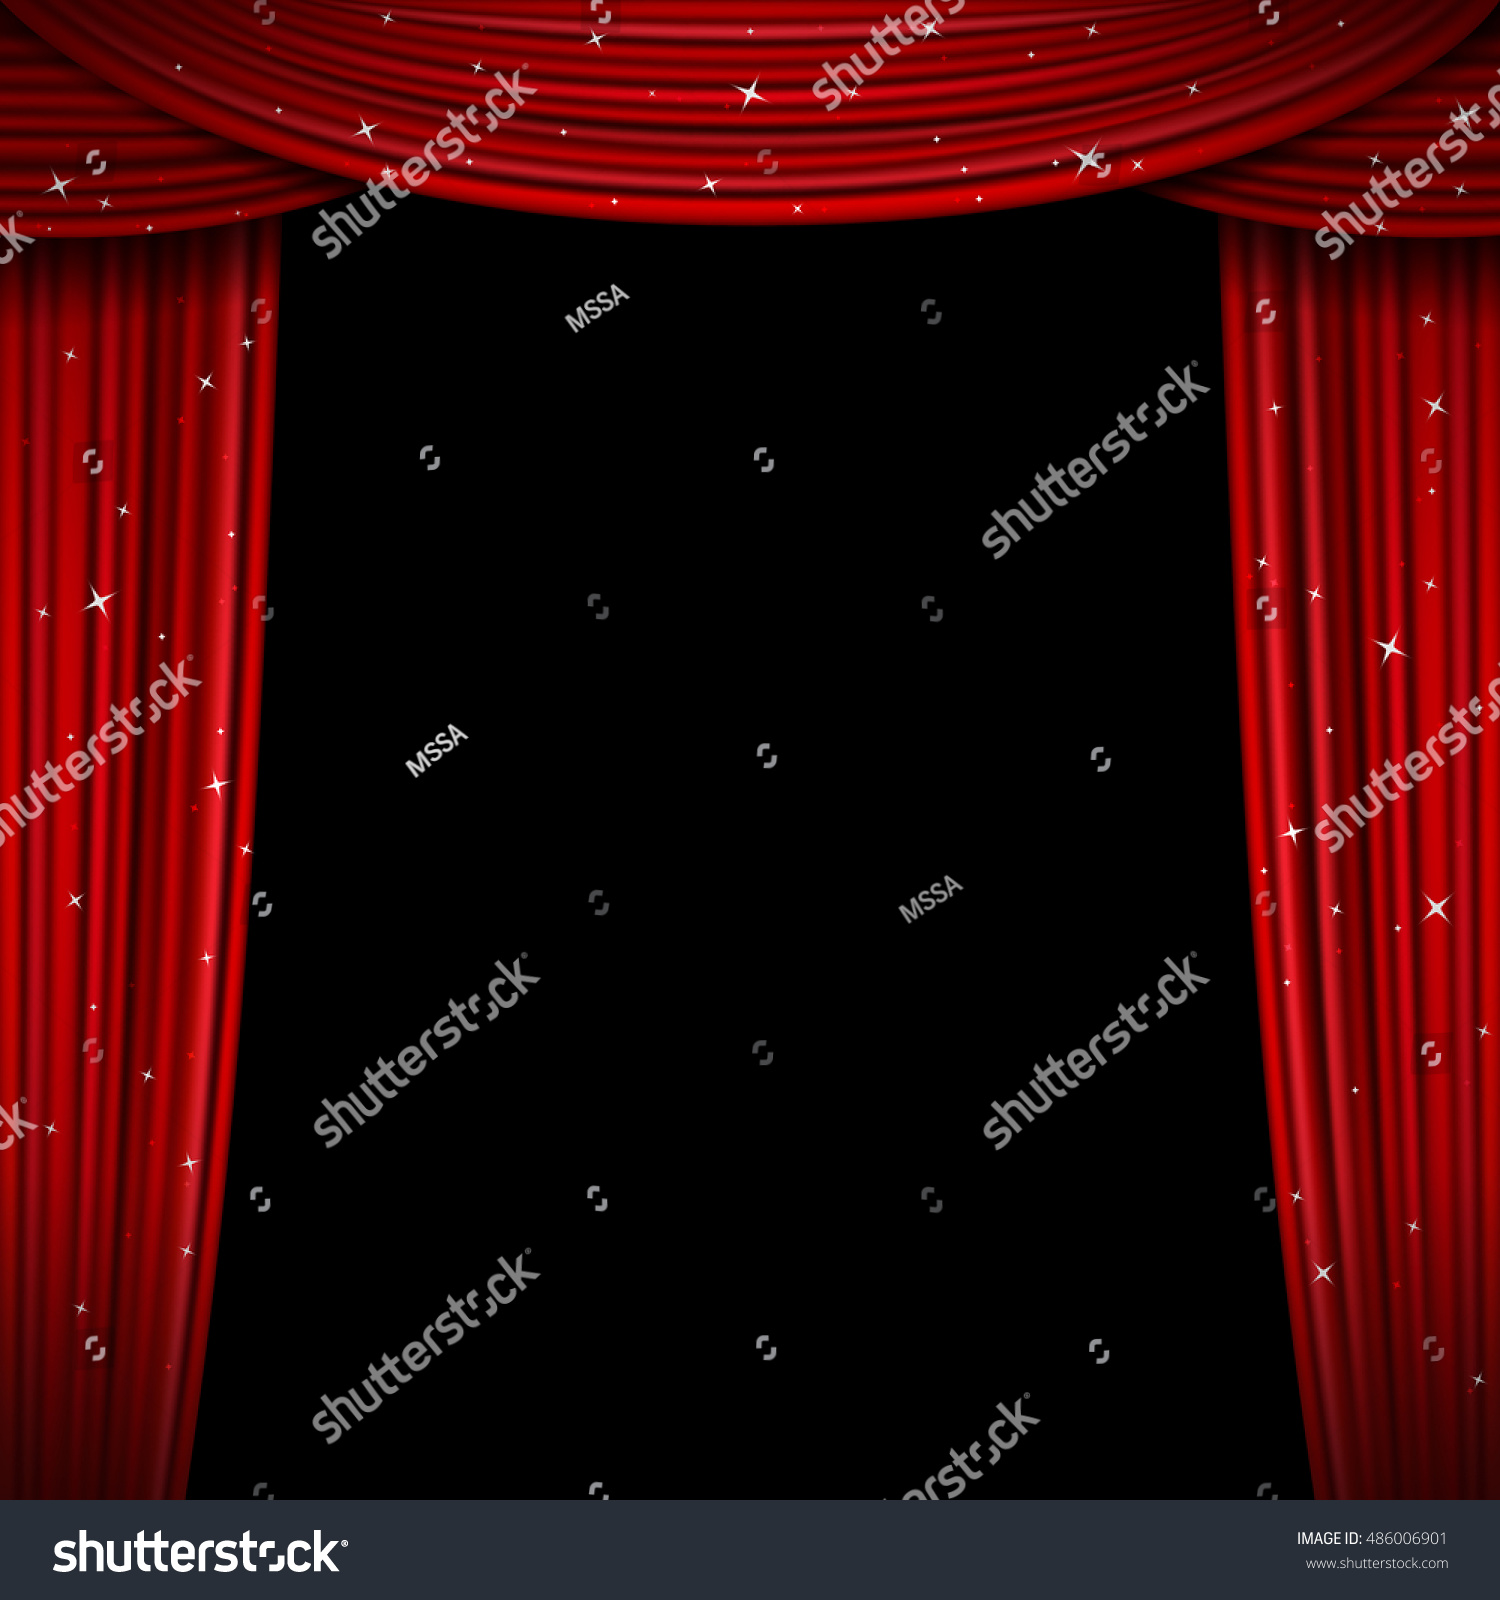 Blue stage curtains blue stage curtain vector free vector in - Glittering Red Curtain Vector Illustration Open Glitter Curtains Background Curtain For Exhibition And Theatre